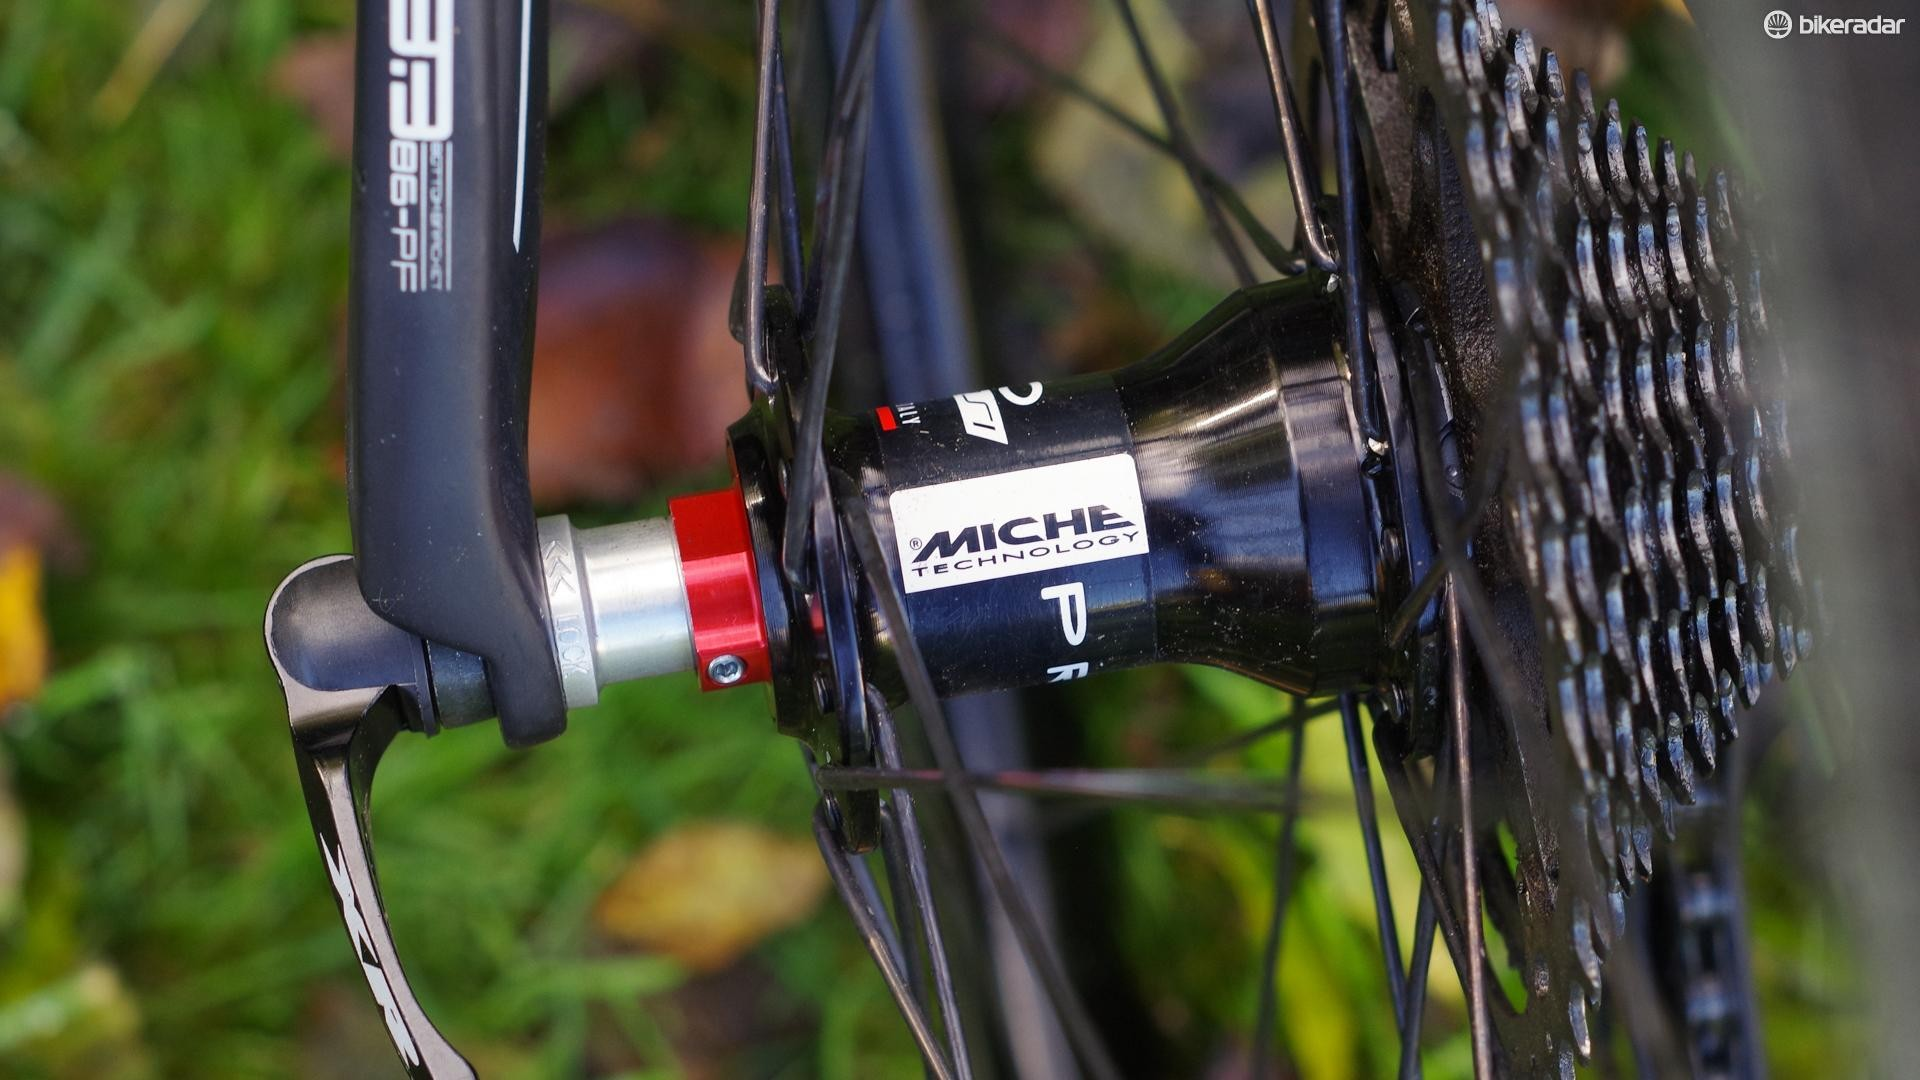 As you'd expect for an Italian brand, the Miche hubs are available with both Shimano/SRAM and Campagnolo freehubs